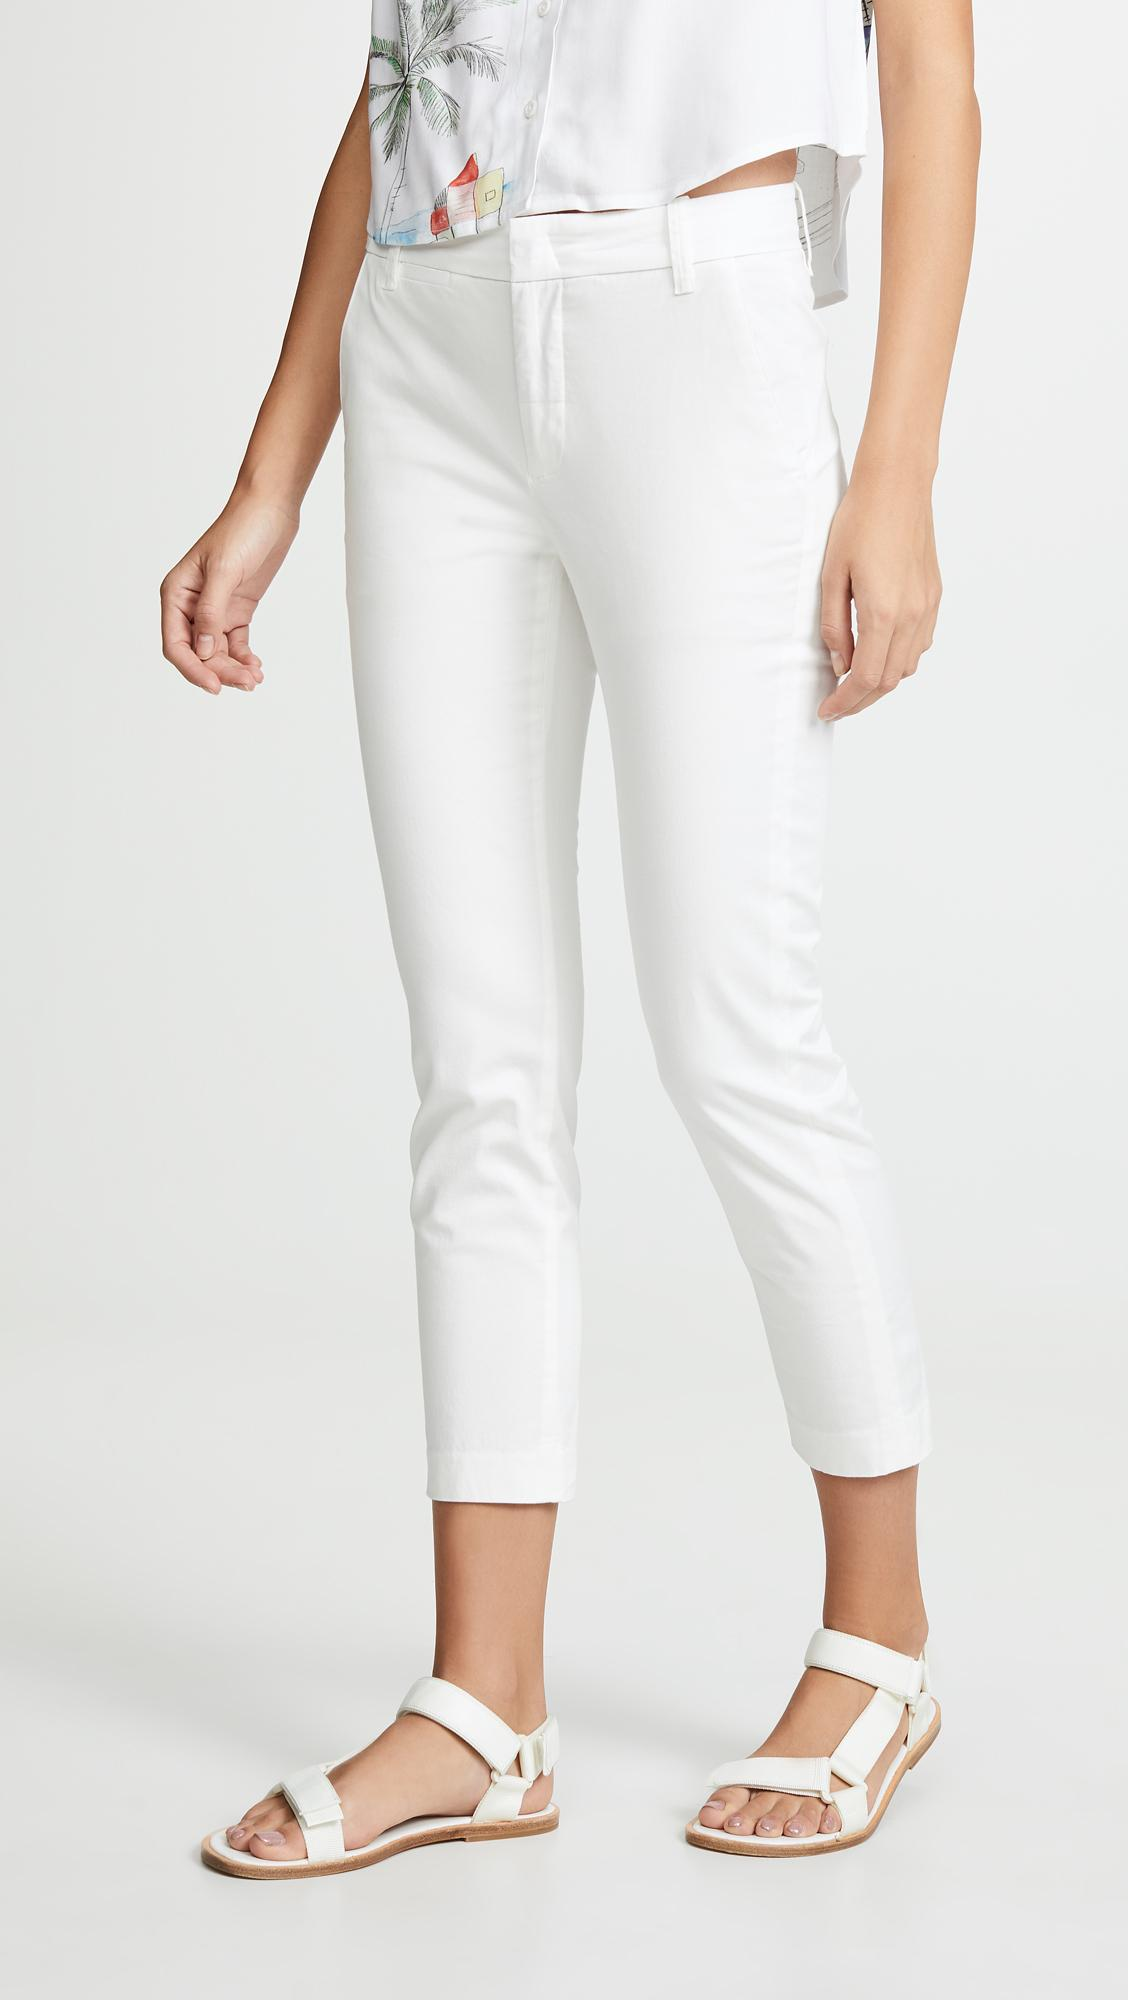 c94f81a48 Lyst - Vince Coin Pocket Chino Pants in White